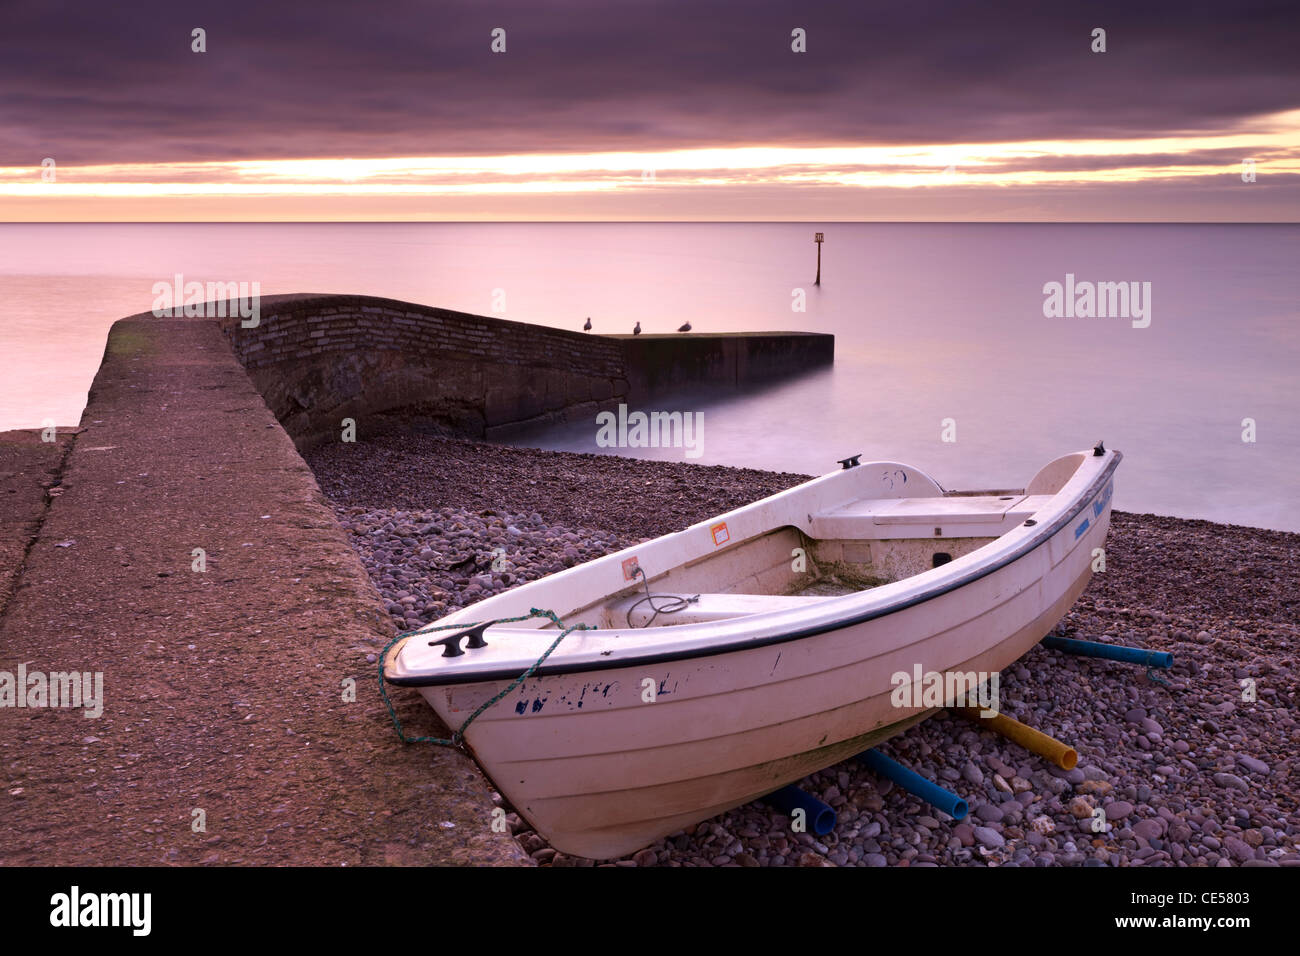 Fishing boat on Sidmouth beach at dawn, Sidmouth, Devon, England. Winter (January) 2012. - Stock Image